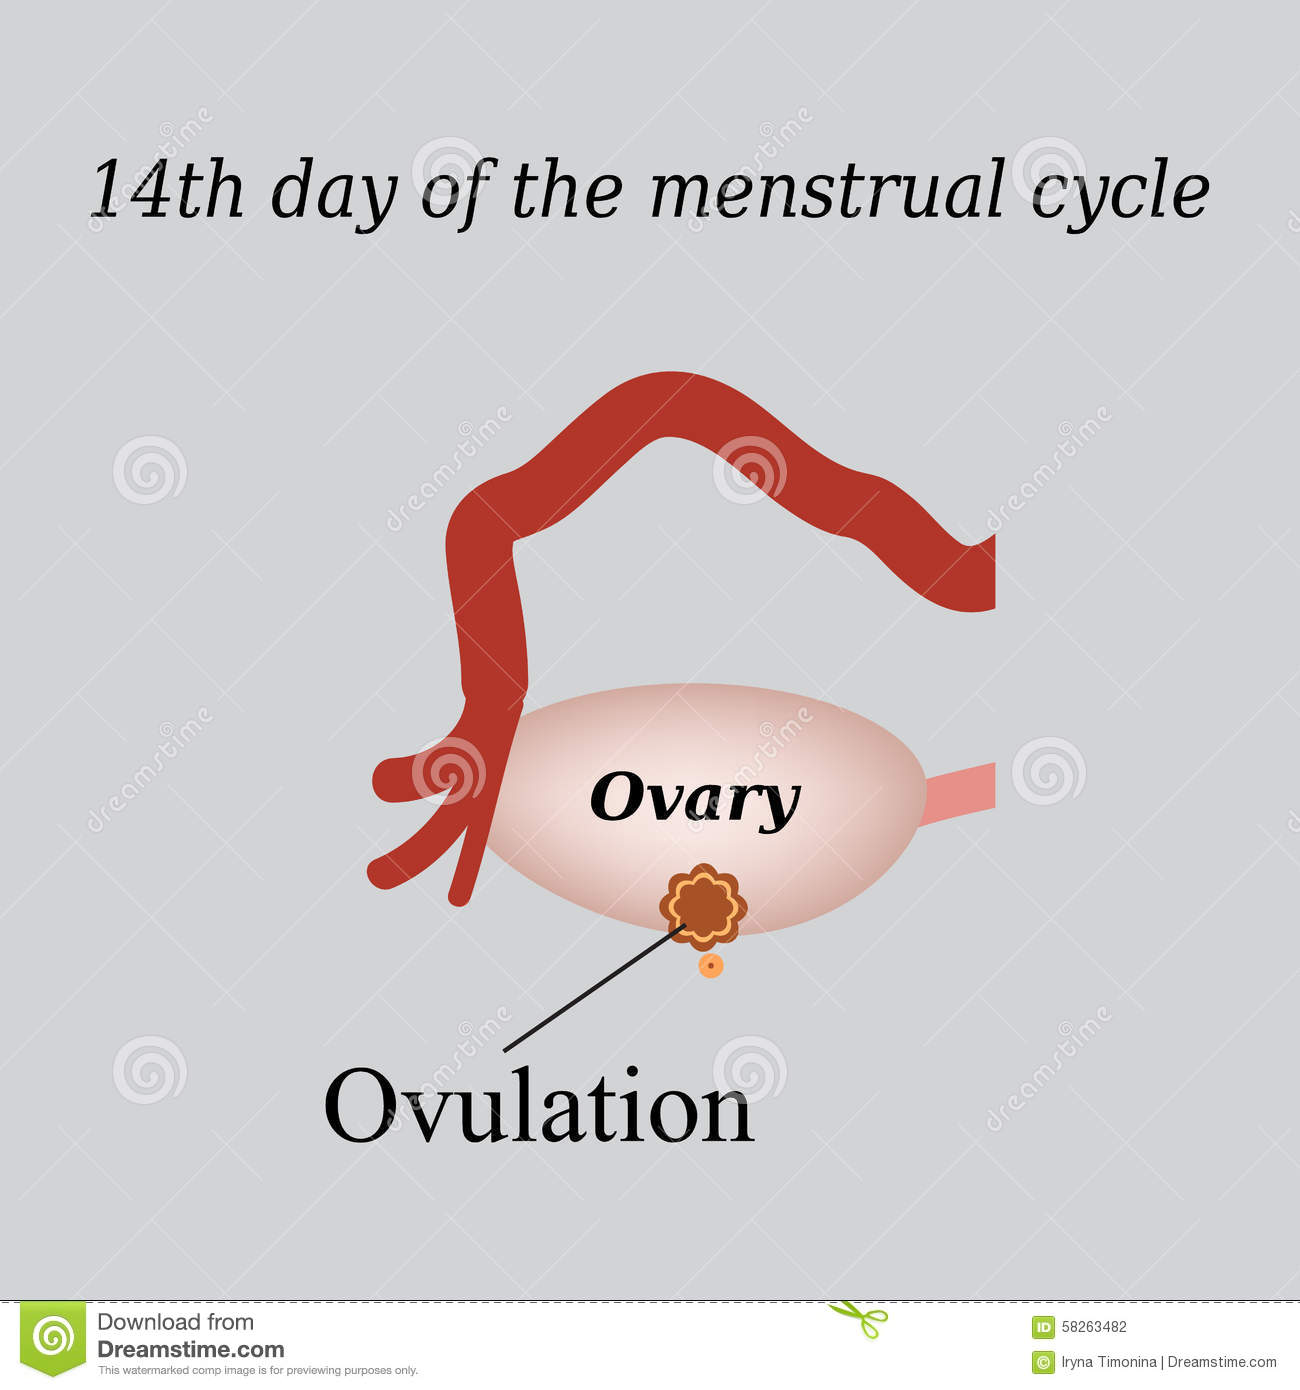 14 Day Of The Menstrual Cycle - Ovulation. Vector Stock ...